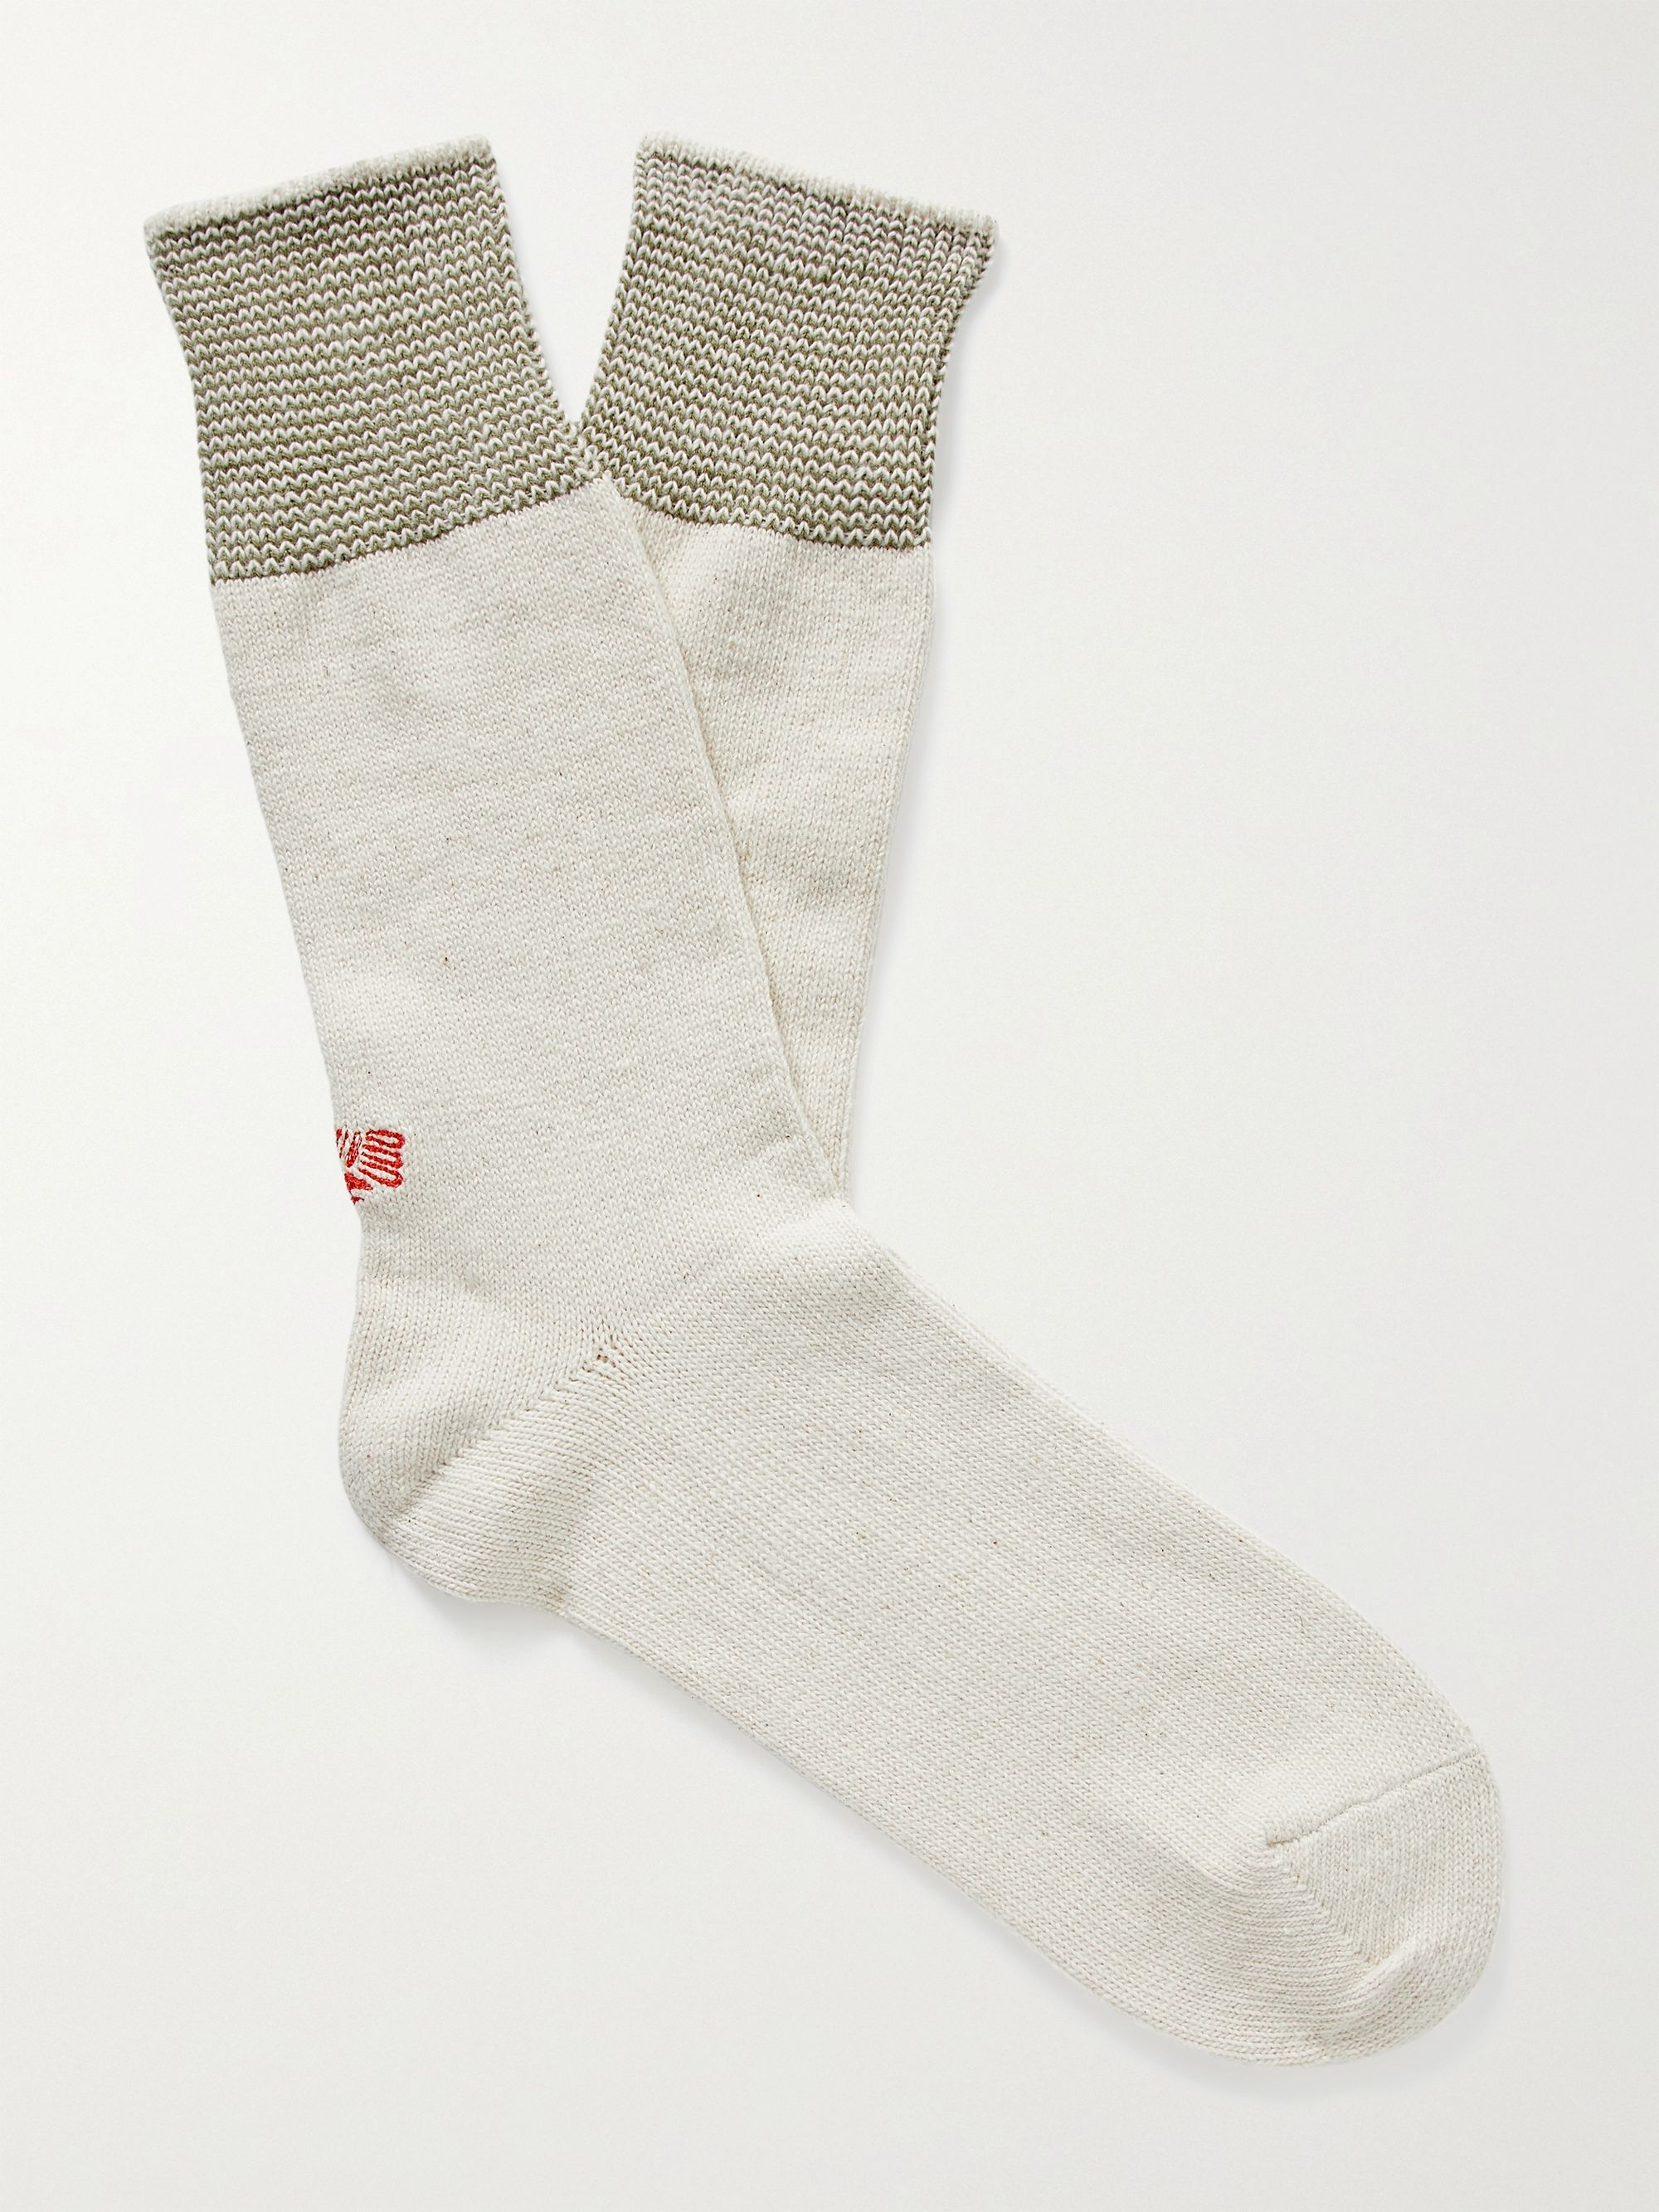 ANONYMOUS ISM Mayo Birdseye Mélange Recycled Cotton-Blend Socks